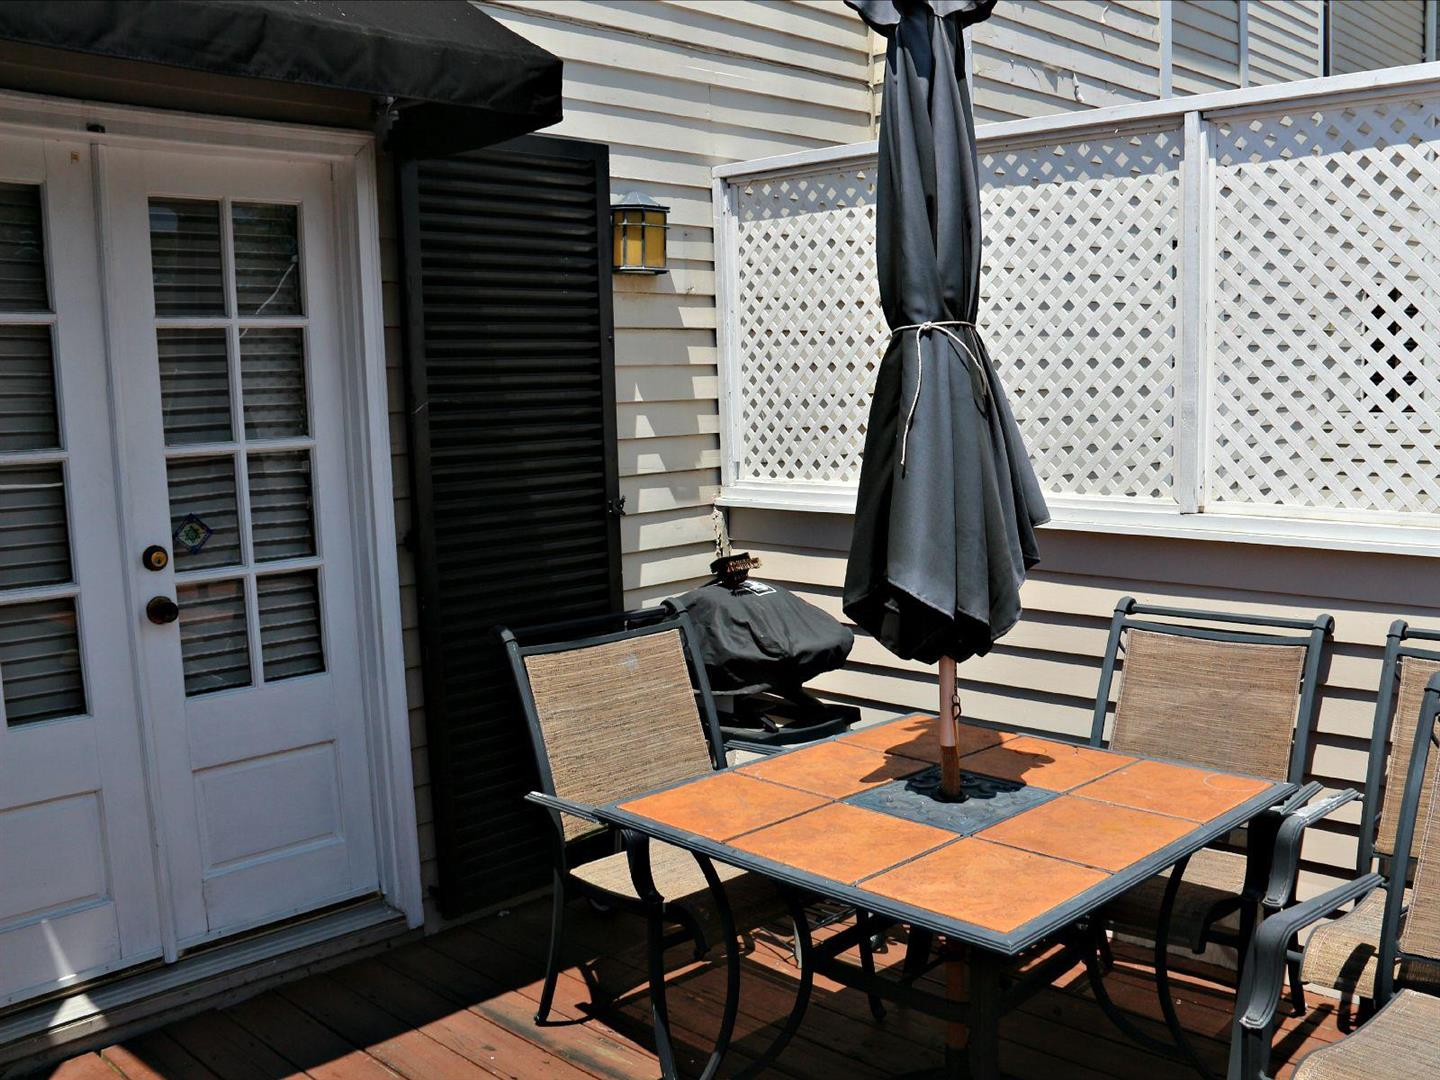 1129JacksonAve.Patio.jpg